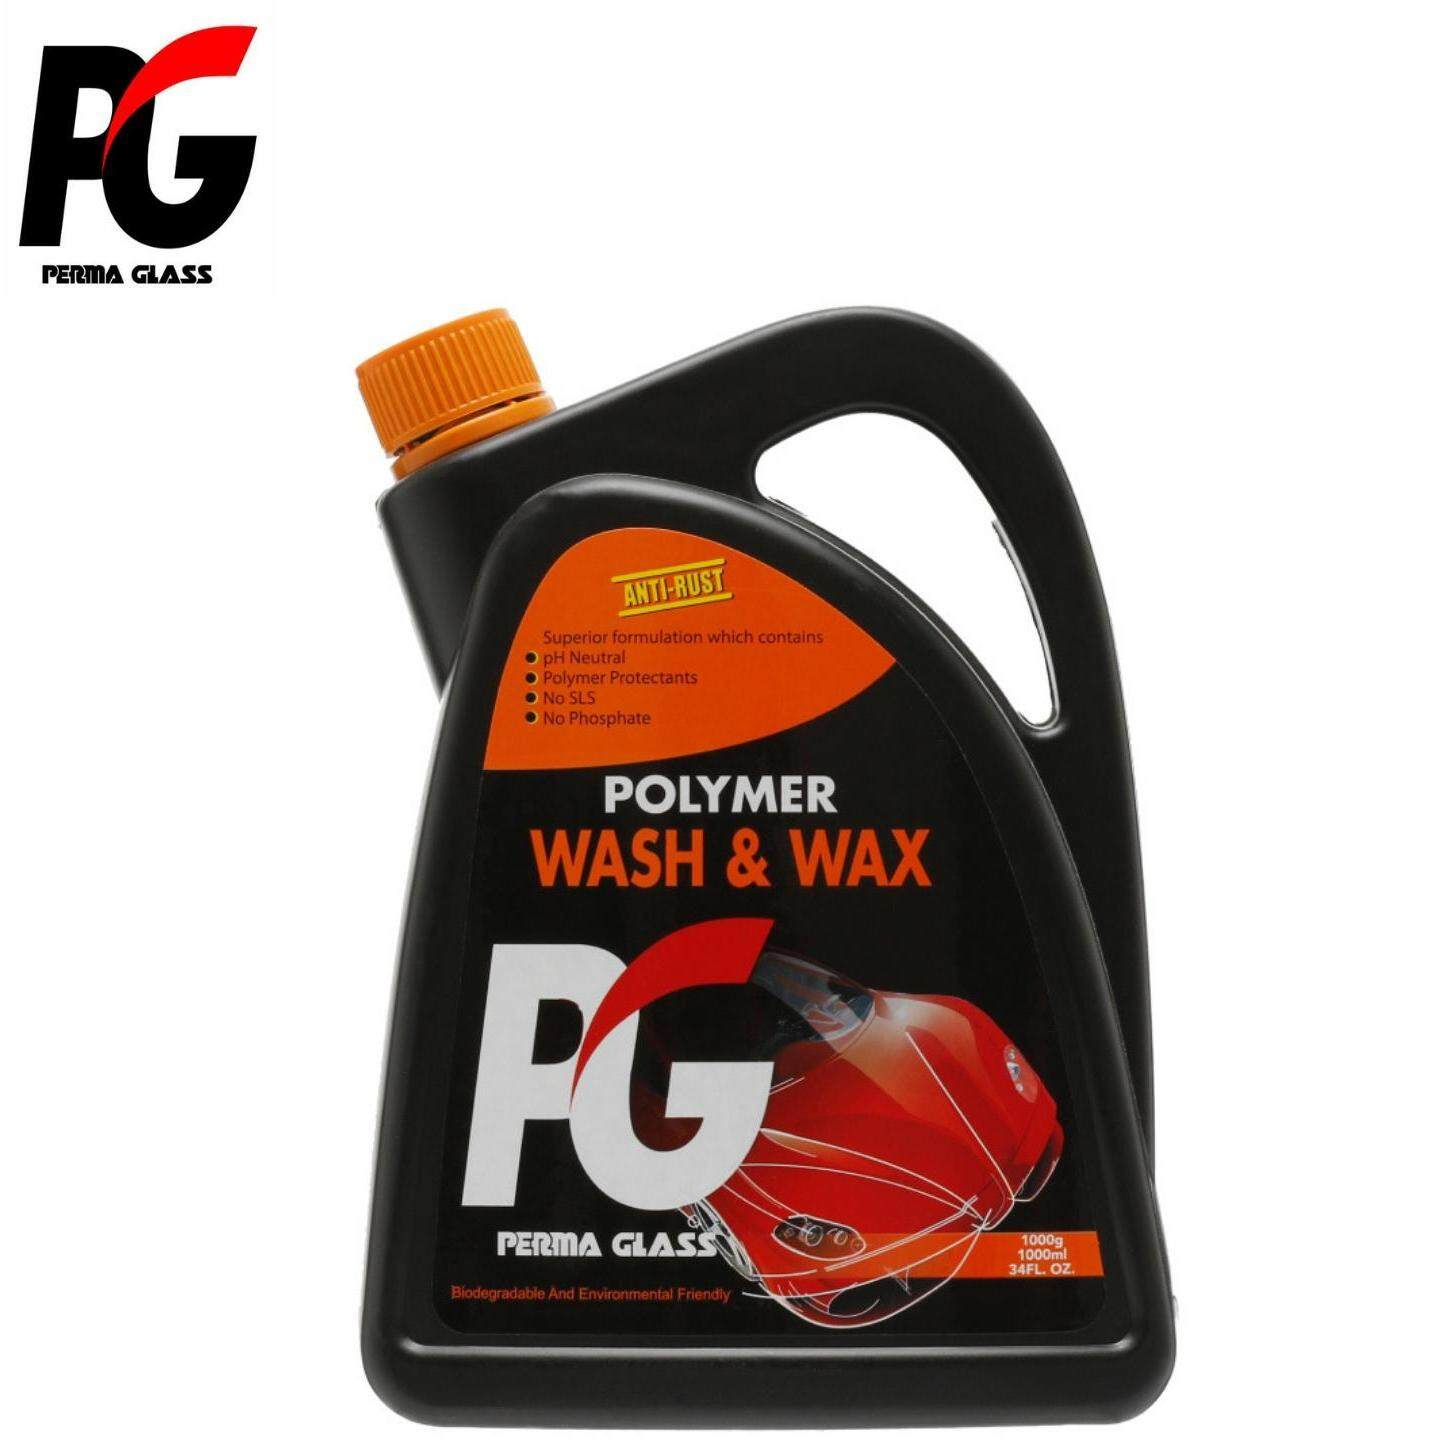 PG POLYMER WASH & WAX (2000ML) - CAR CARE EXTERIOR